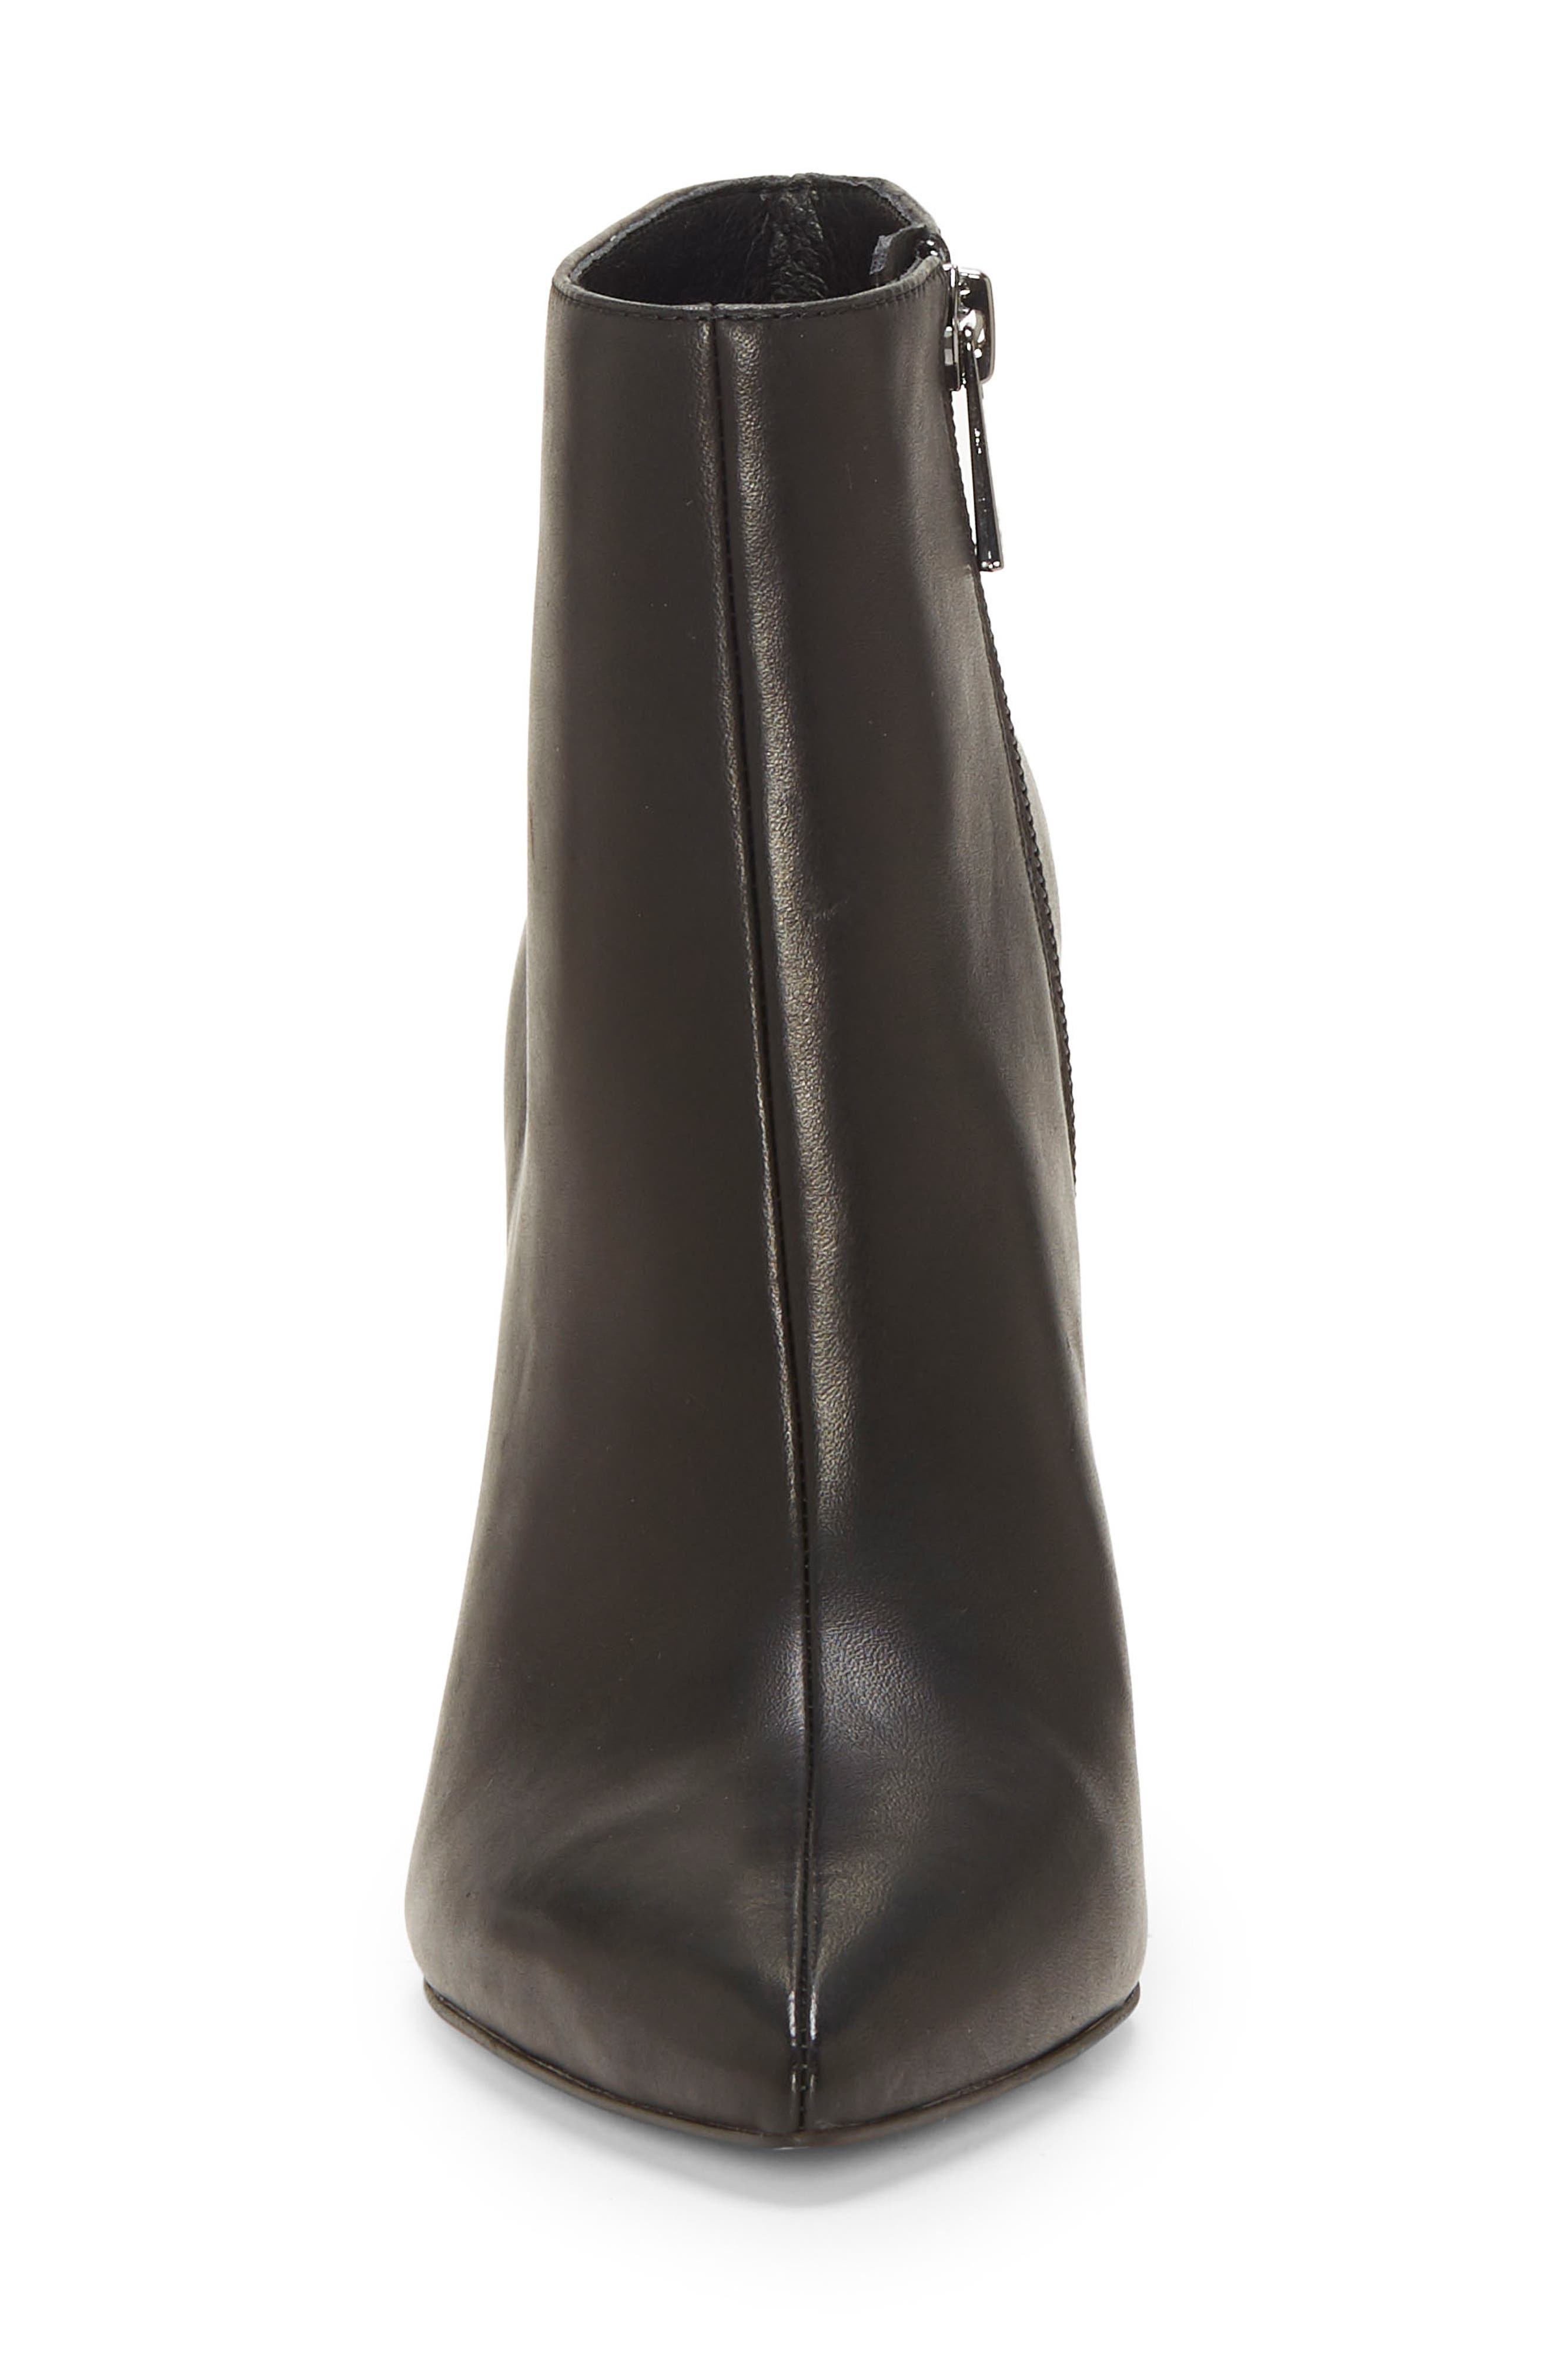 Perci Bootie,                             Alternate thumbnail 4, color,                             BLACK LEATHER